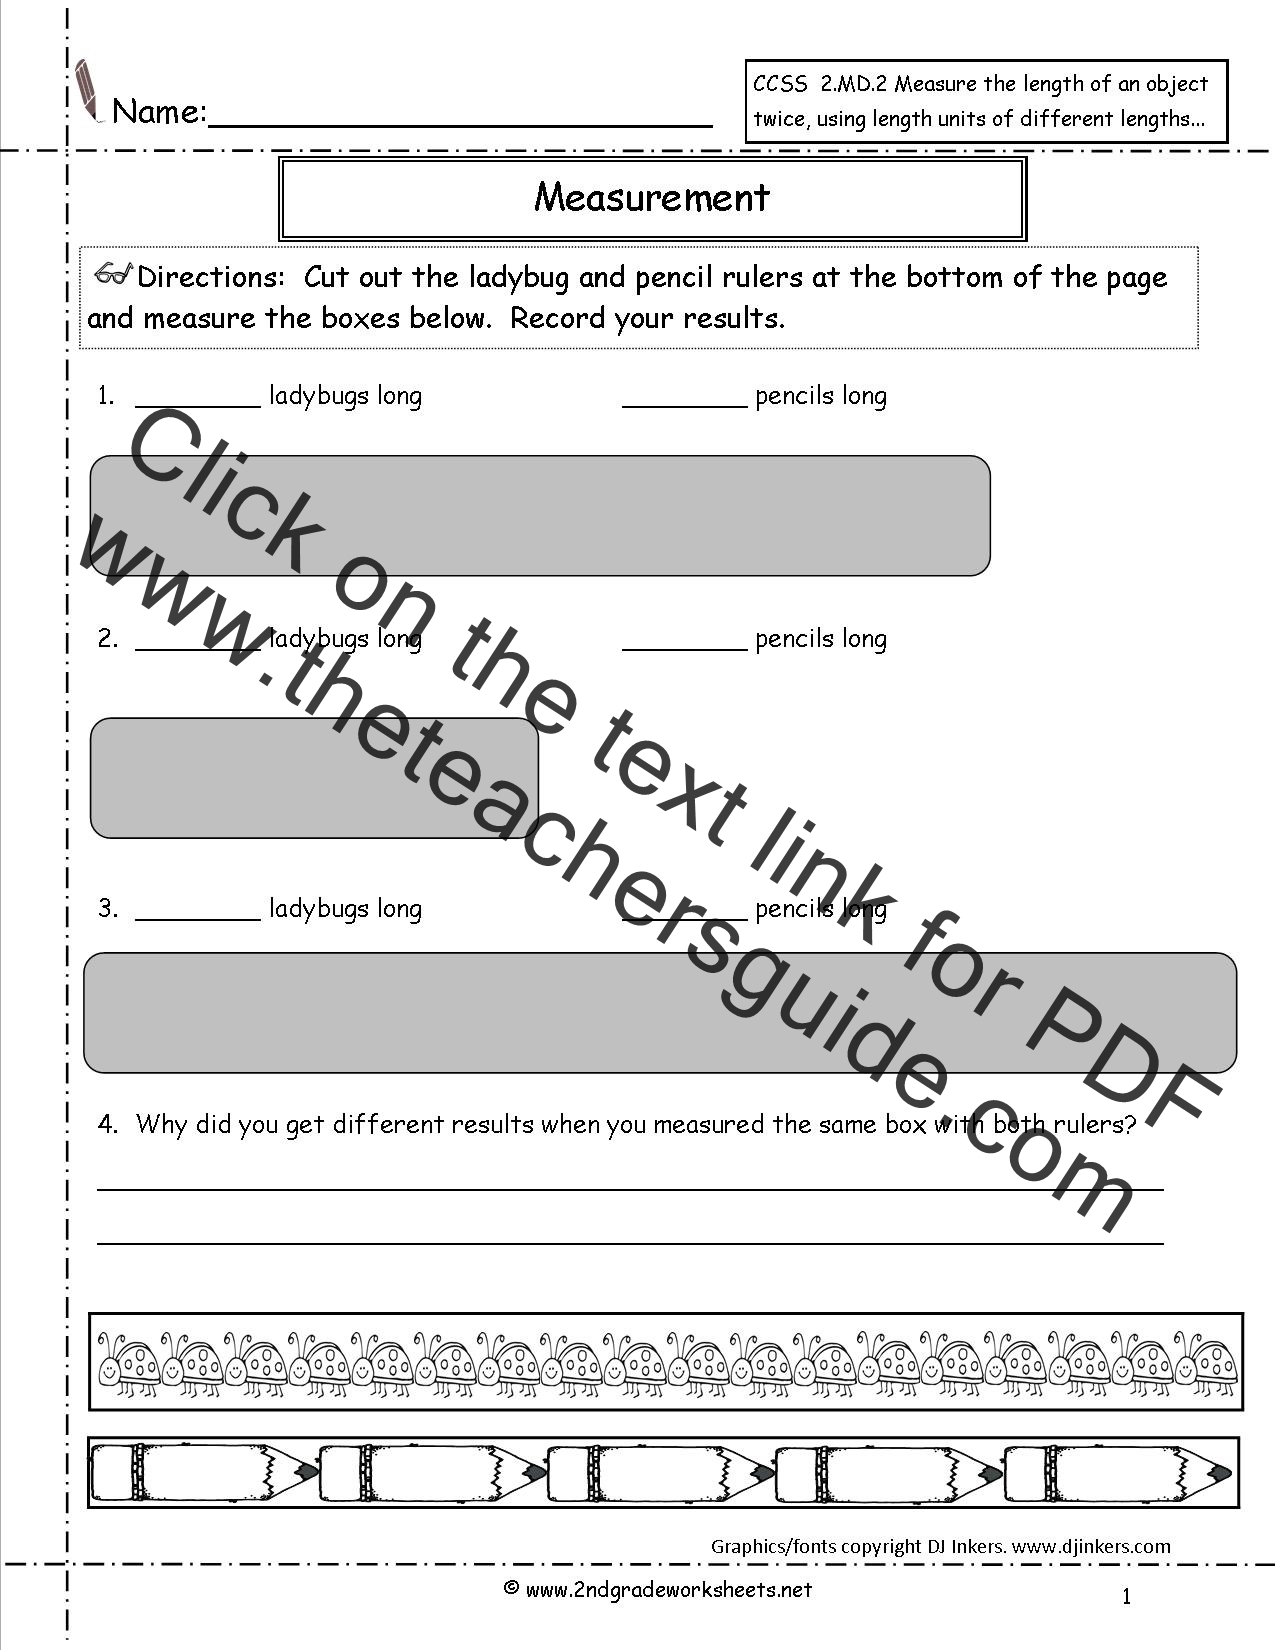 worksheet Measurement Worksheets Grade 5 2nd grade math common core state standards worksheets md 2 measure